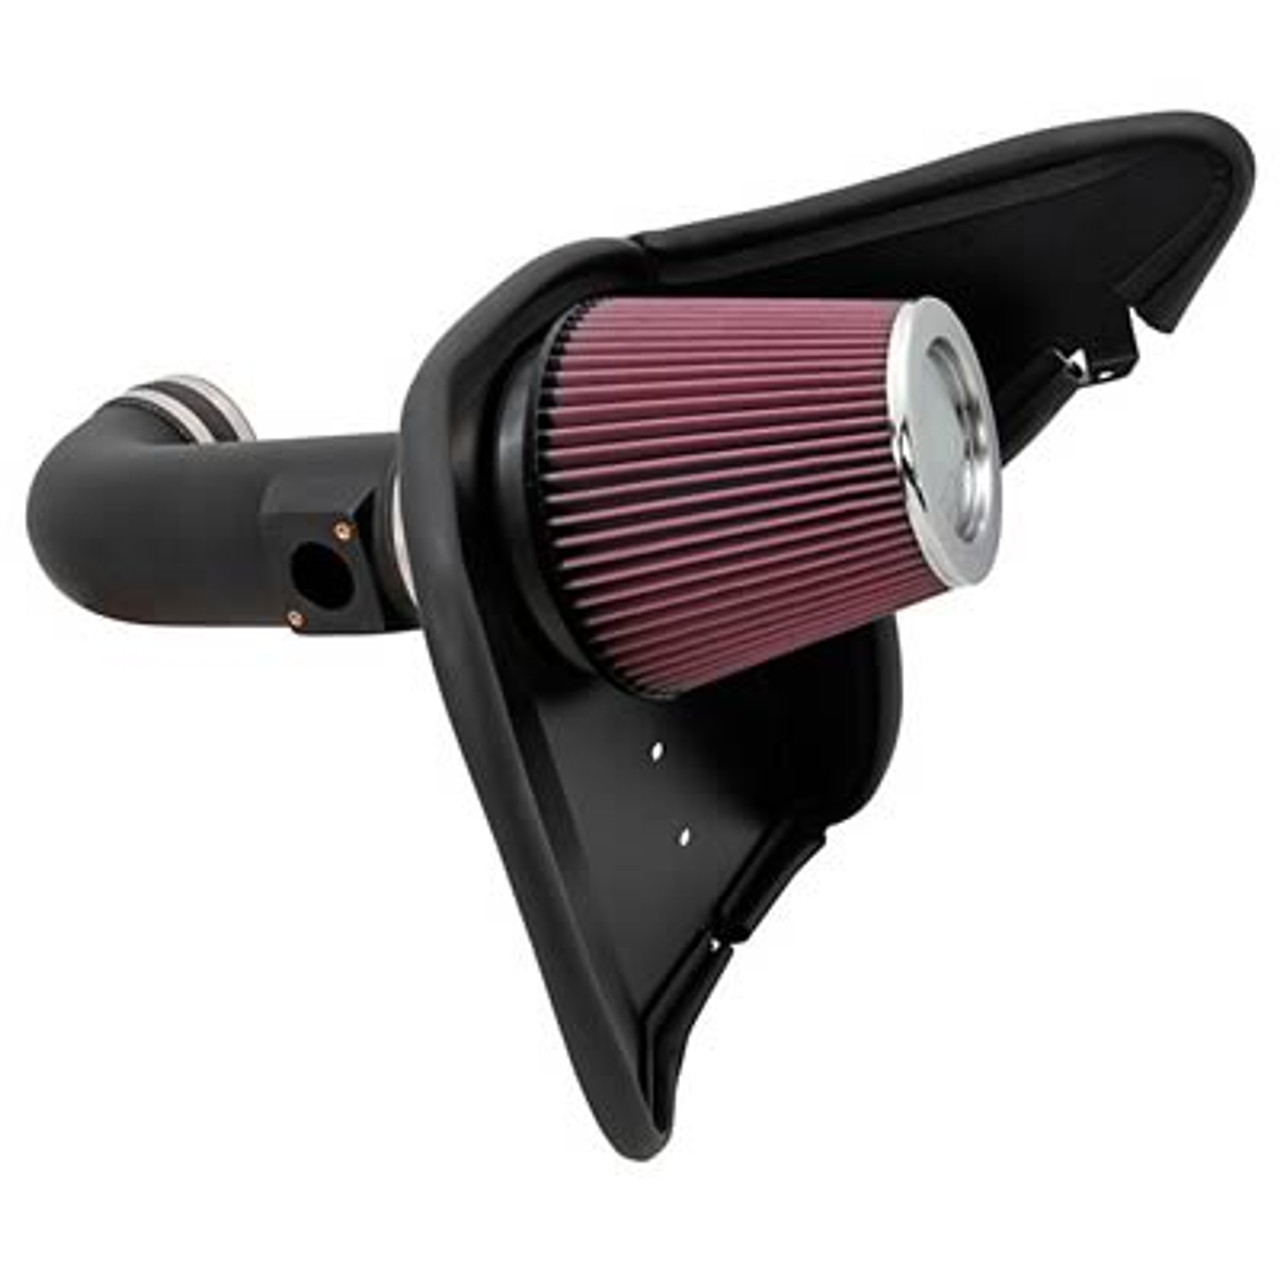 K&N 63 Series Aircharger High Performance Air Intake 10-15 Camaro 6.2L 63-3074 with FREE SHIPPING